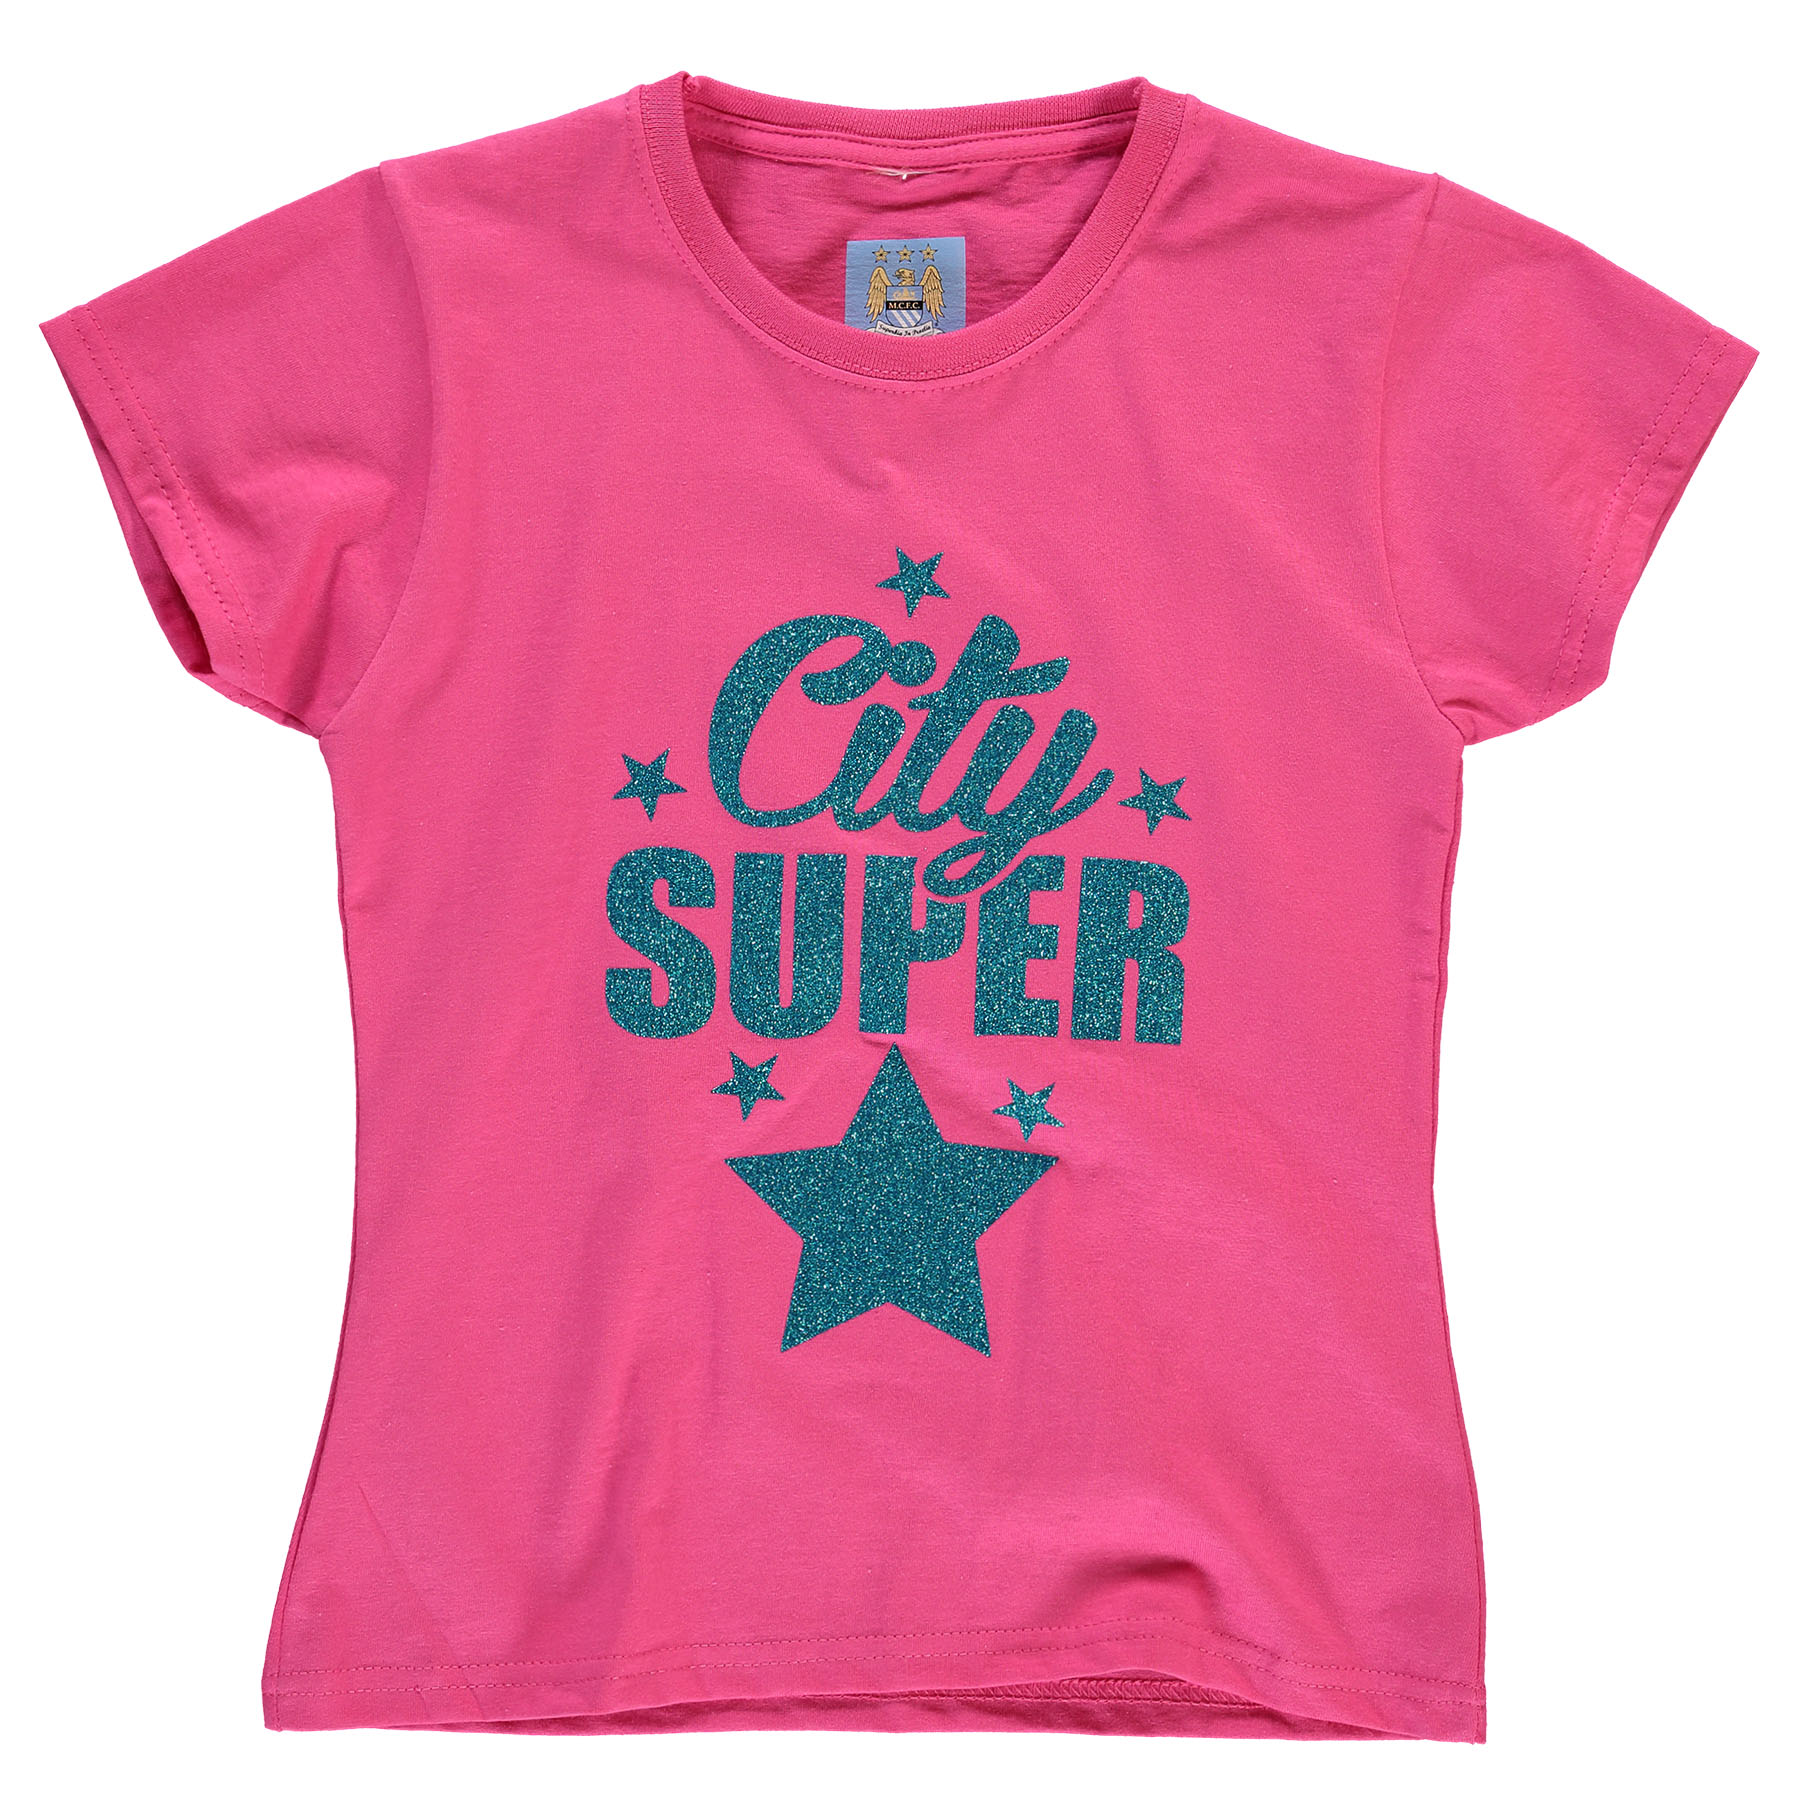 Manchester City Glitter Star T-Shirt - Pink - Junior